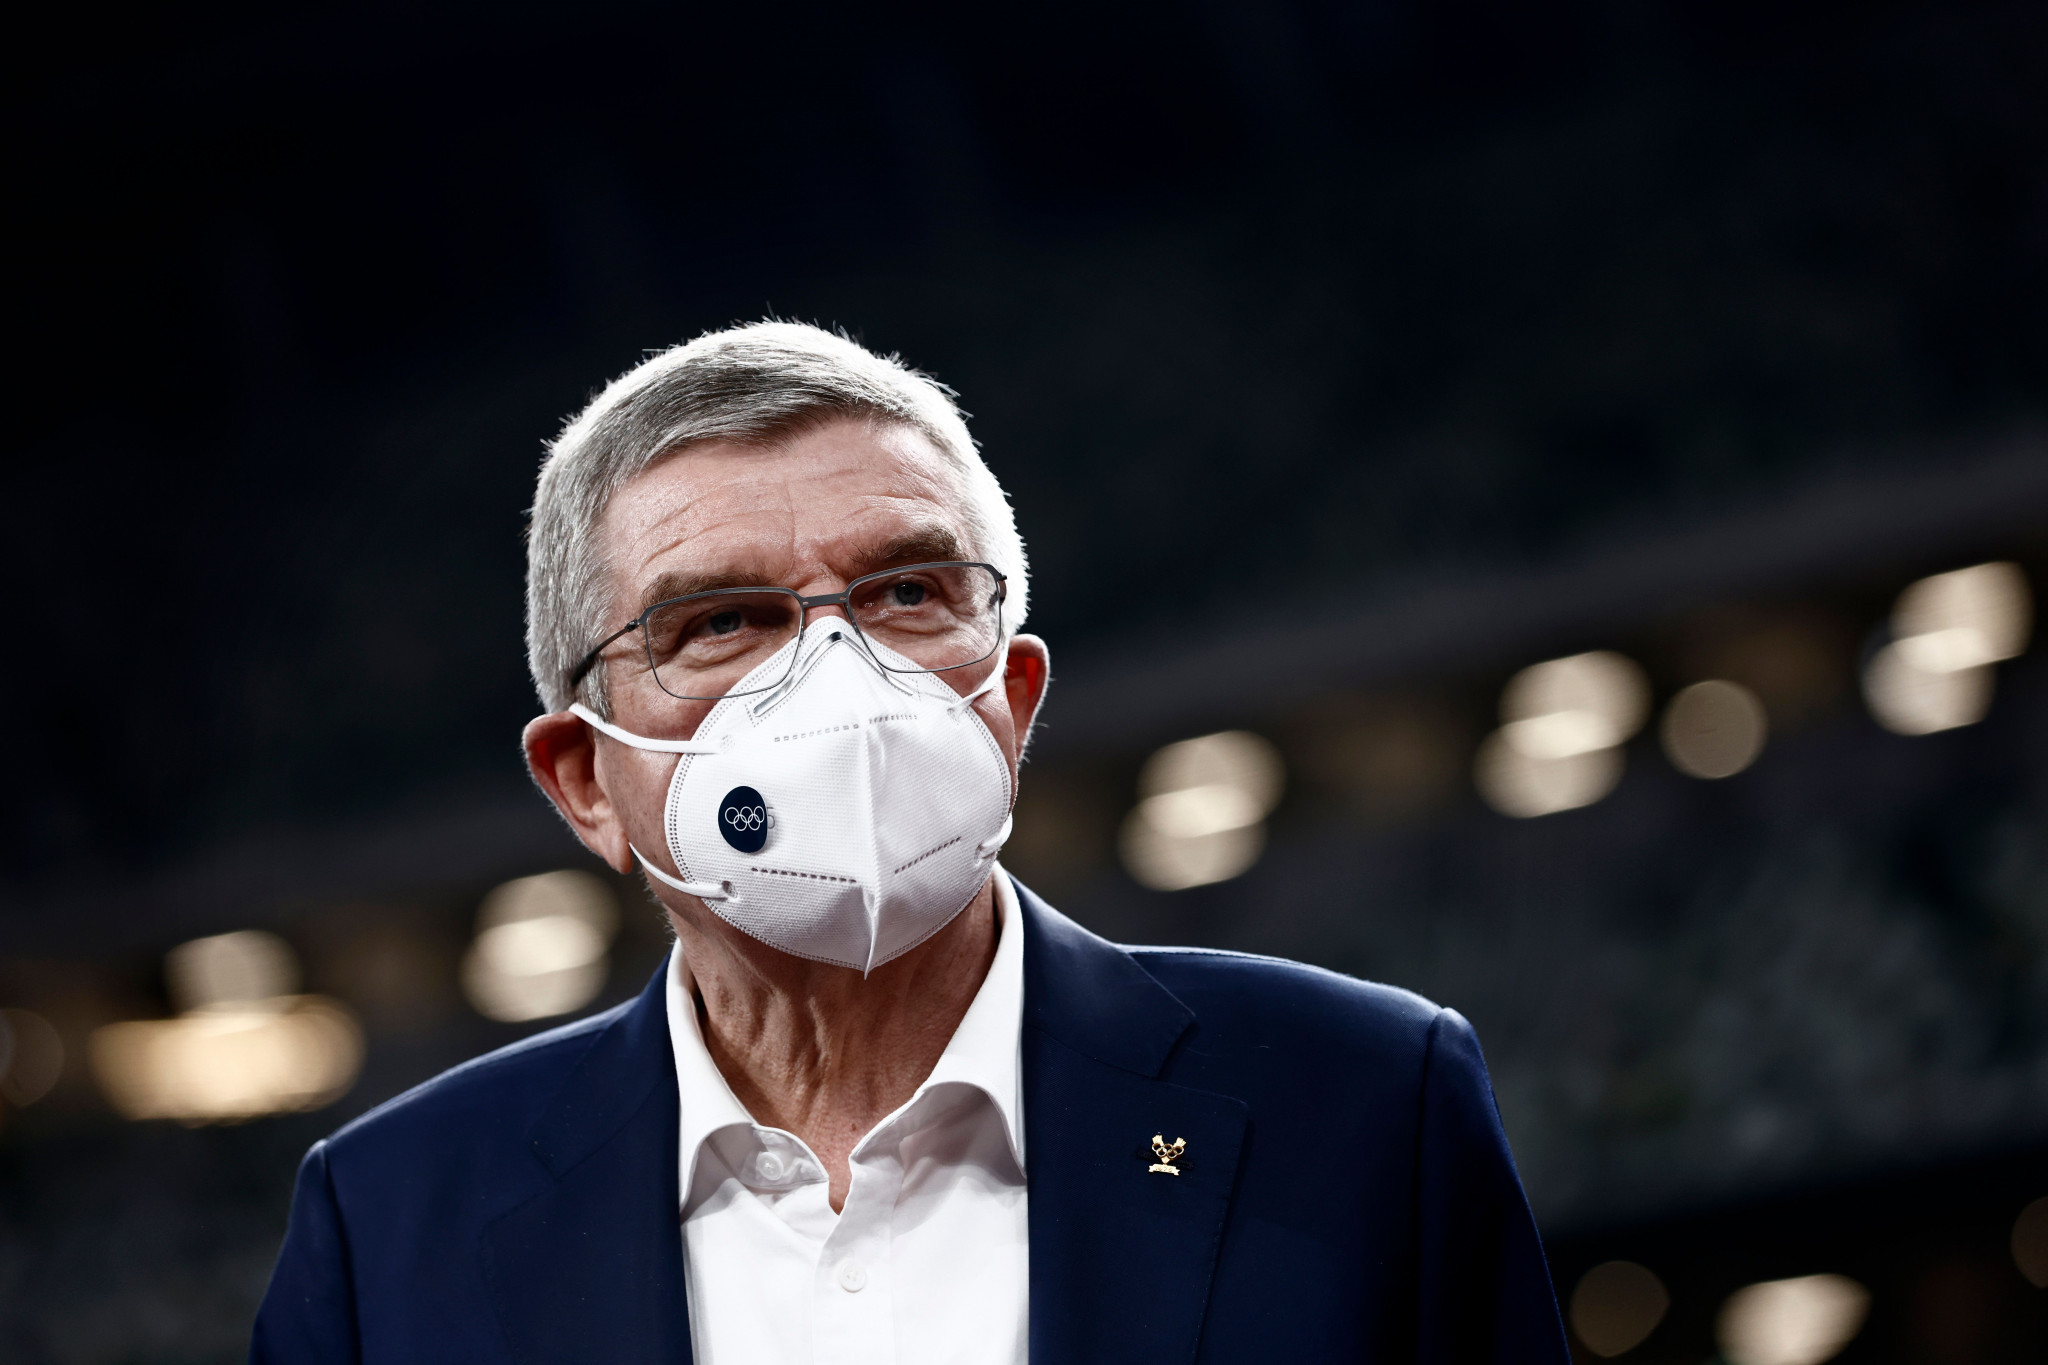 IOC President Thomas Bach spoke with NOCs on plans for Tokyo 2020 and Beijing 2022 last week ©Getty Images